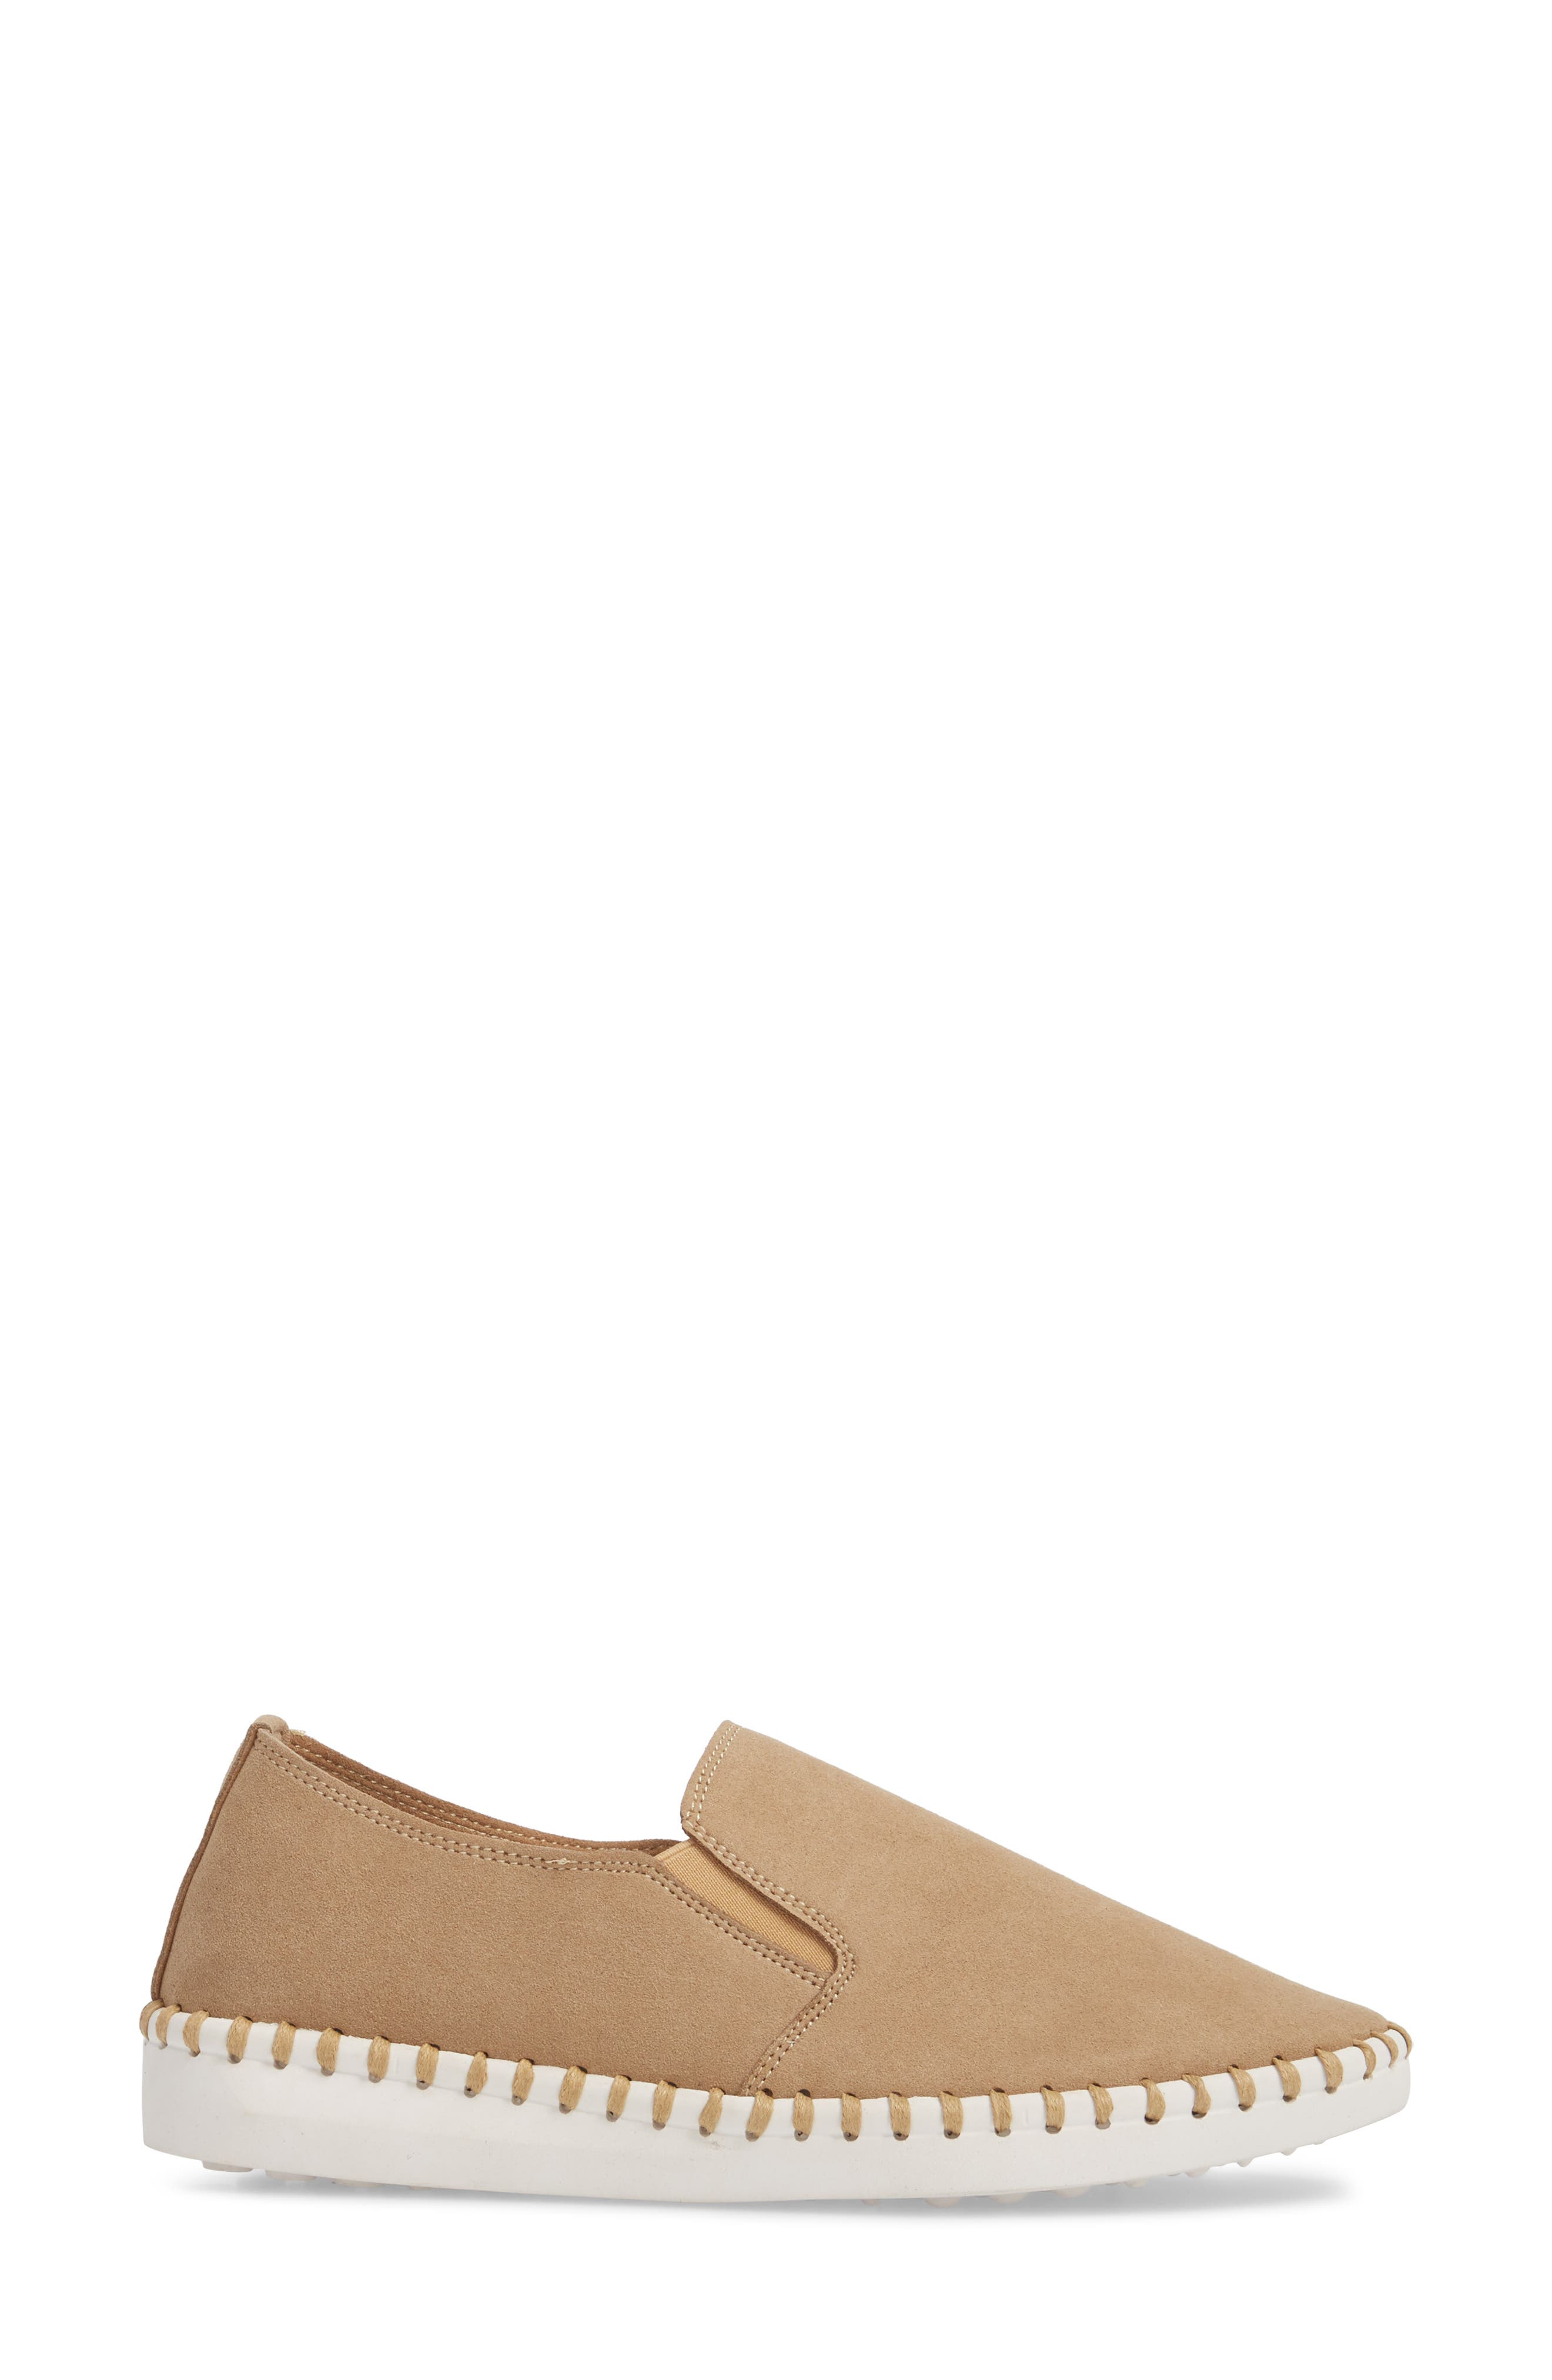 Salinas Waterproof Slip-On Sneaker,                             Alternate thumbnail 3, color,                             TAN FABRIC